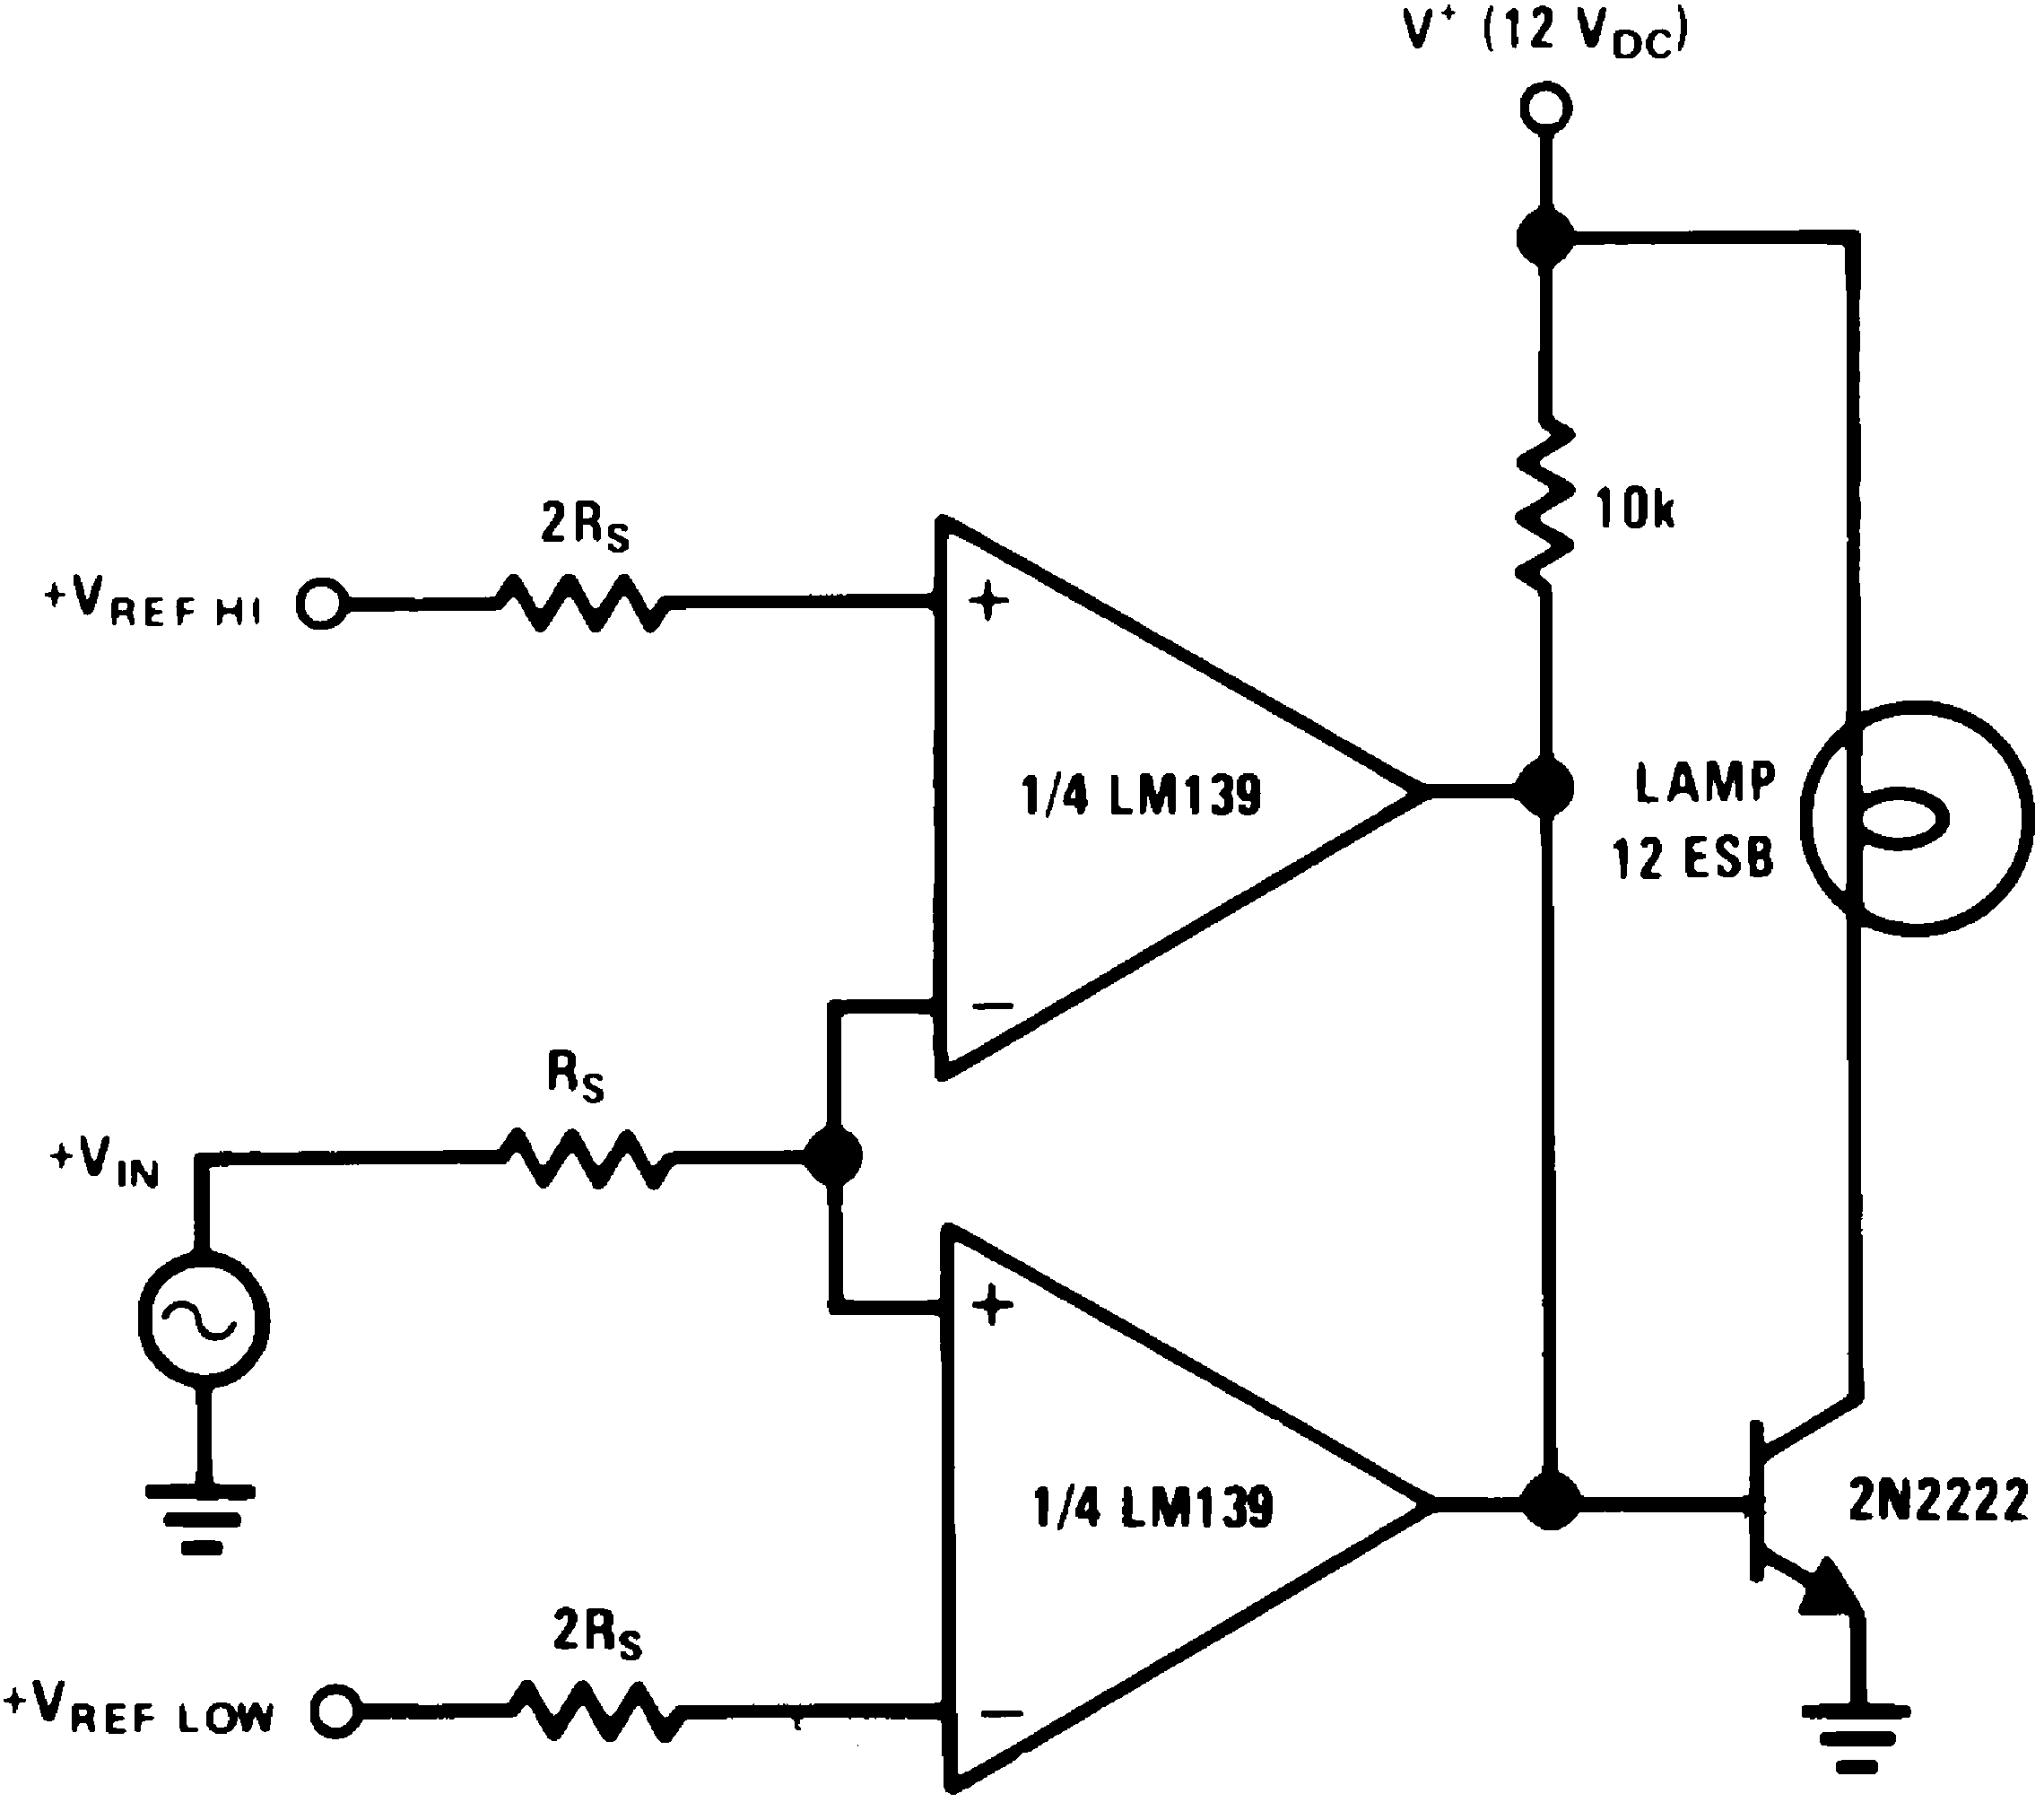 Lm239 N The Circuit Schematic For Lm339 Quad Voltage Comparator Limit V 15 Vdc